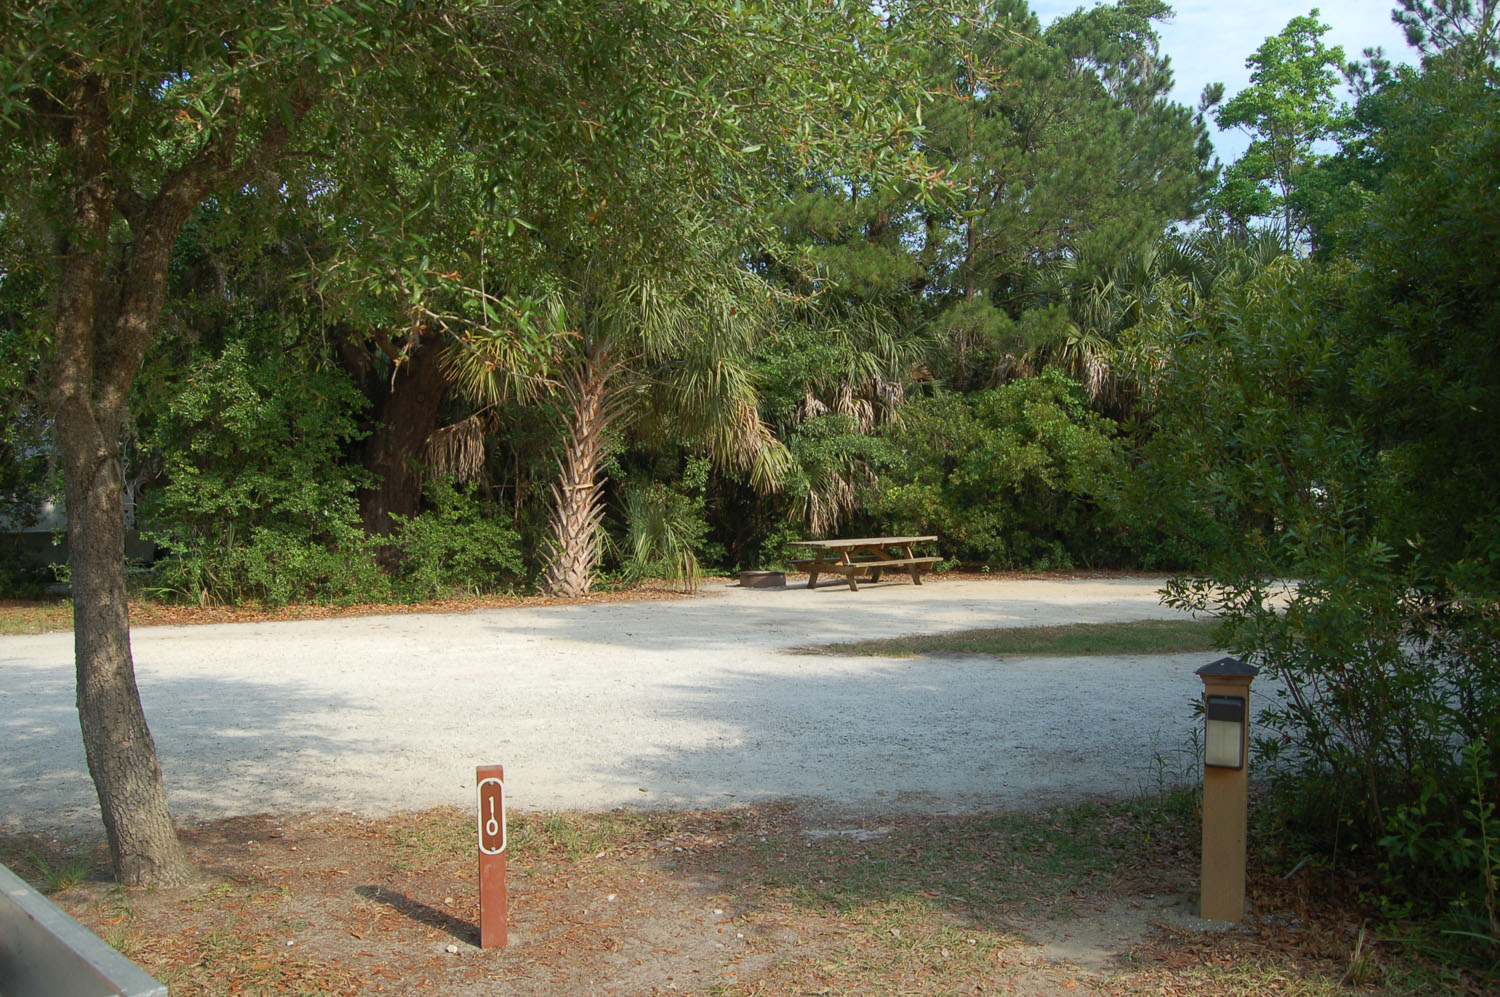 Image of campsite #10 at James Island County Park